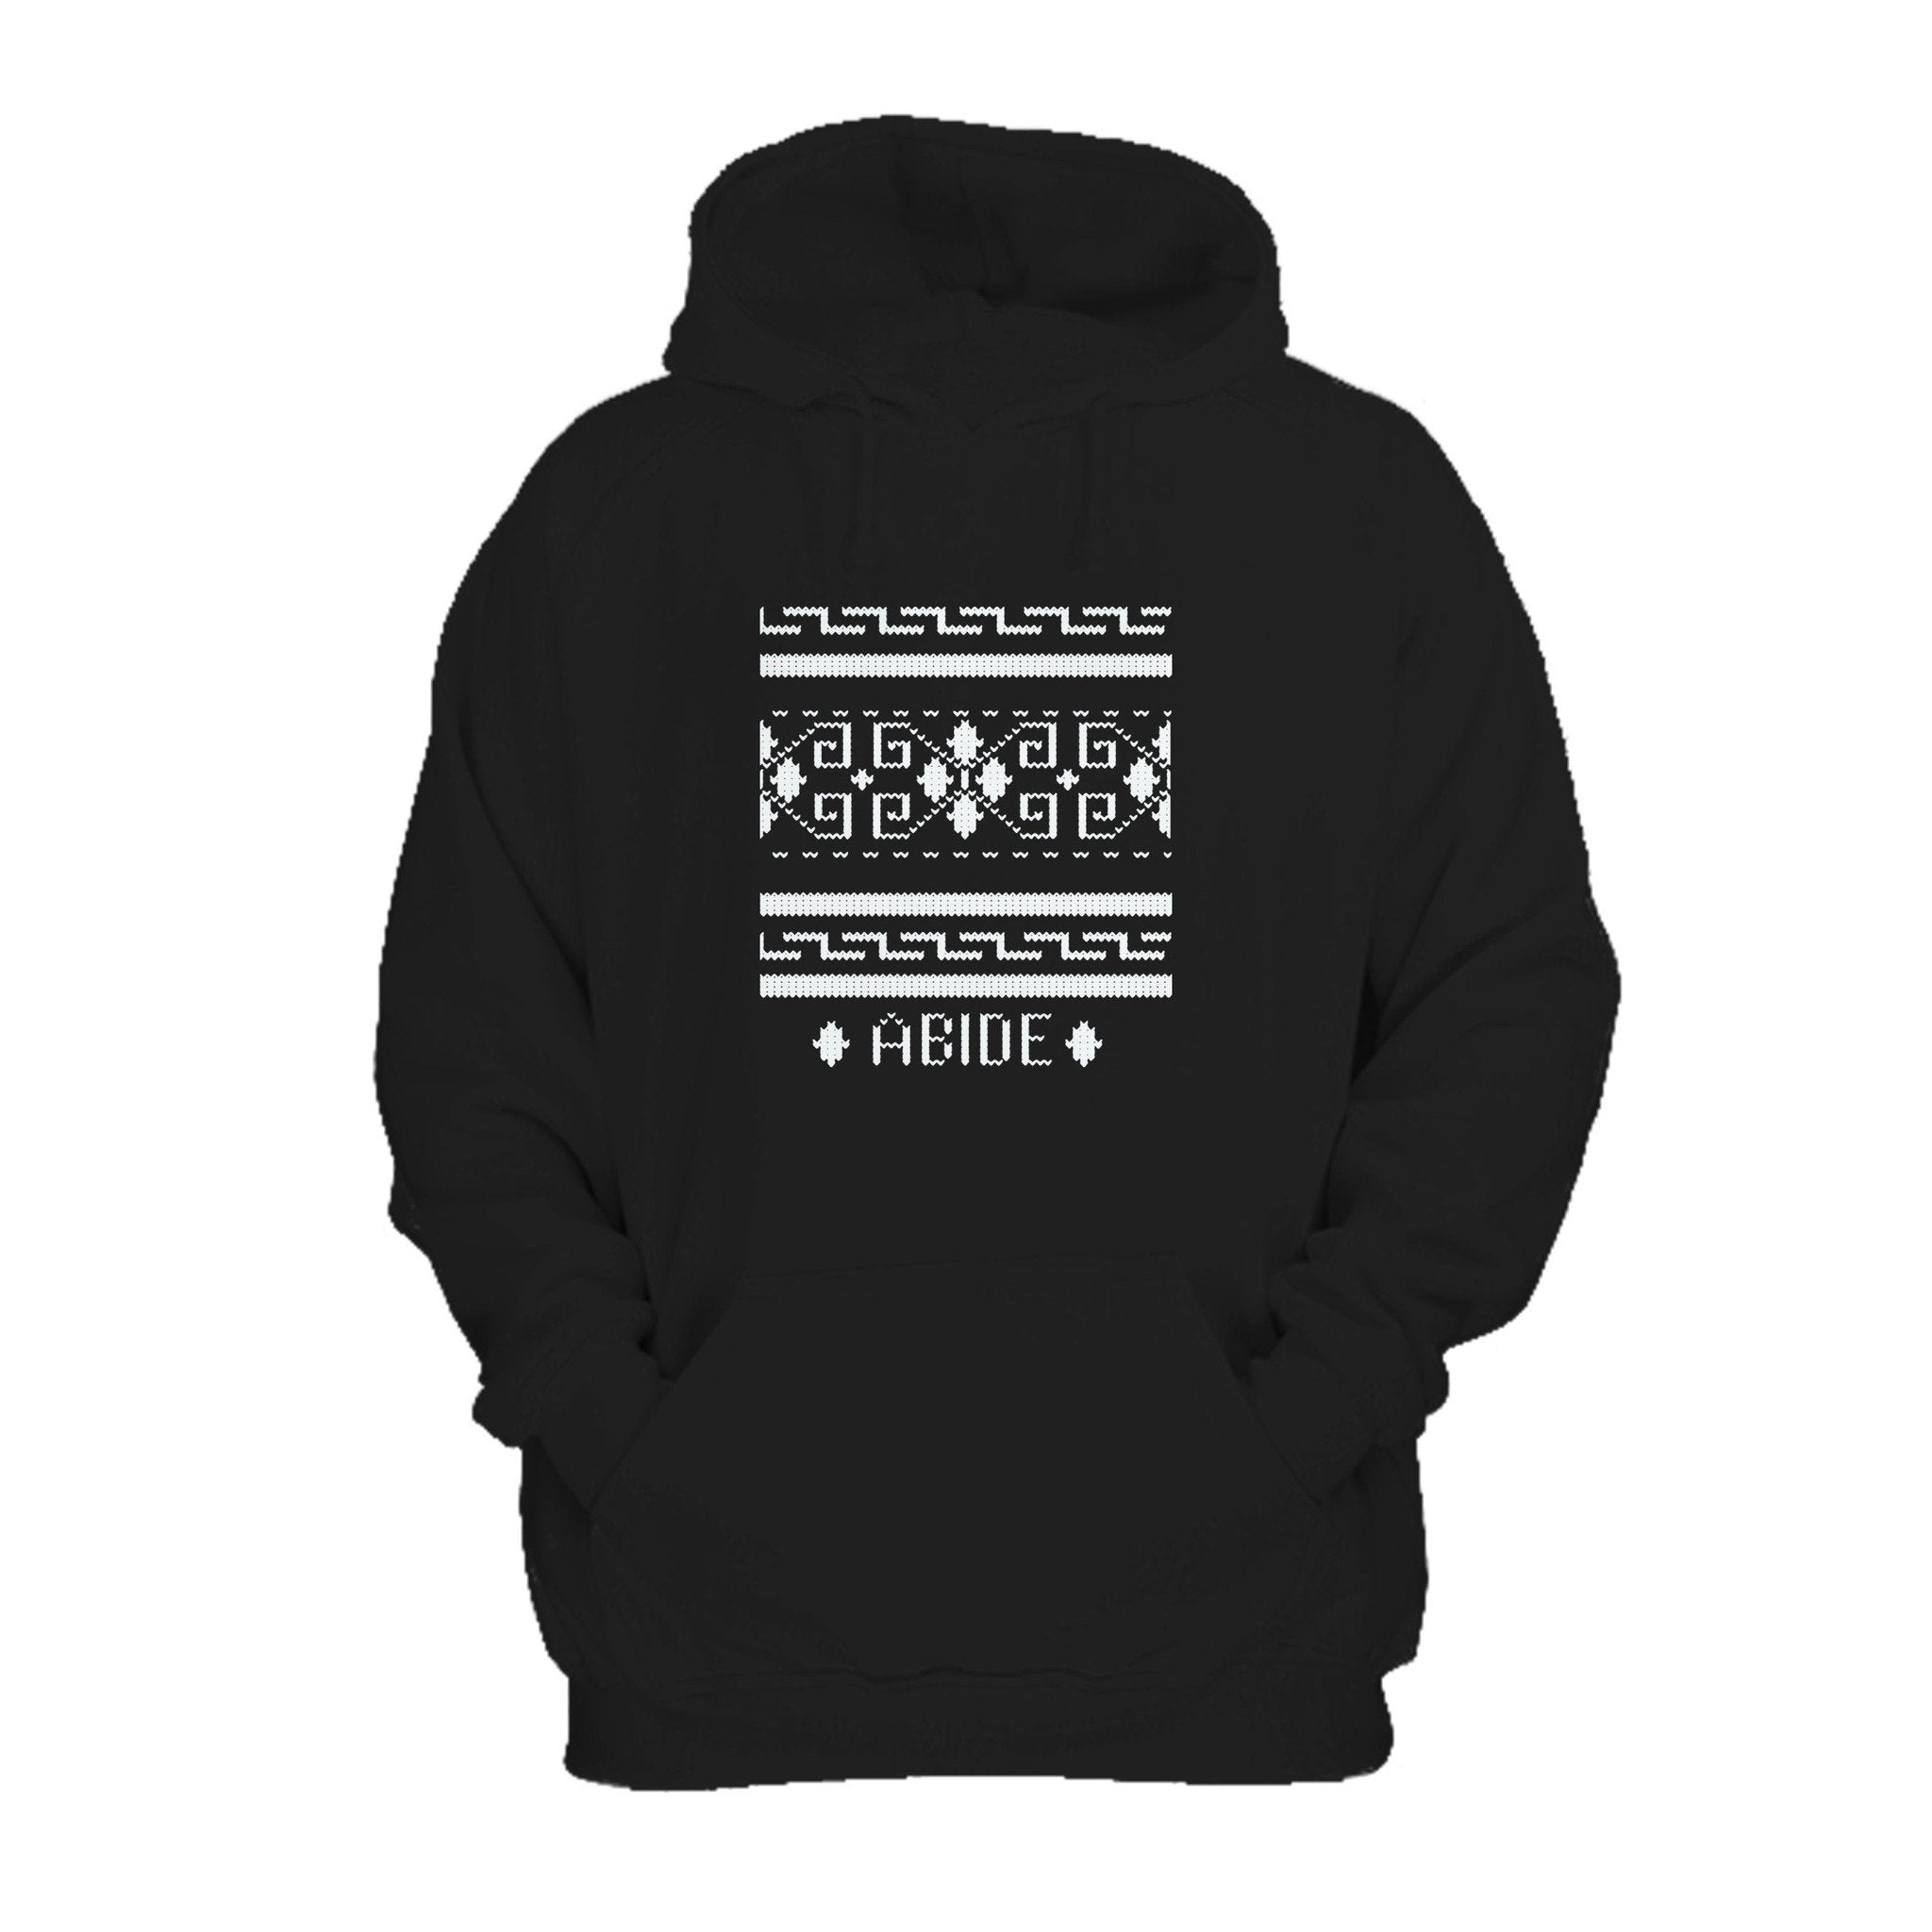 Funny Big Lebowski Abide Film The Dude Cohen Brothers Jeff Bridges John Goodman Comedy Geometric Caucasians Hoodie